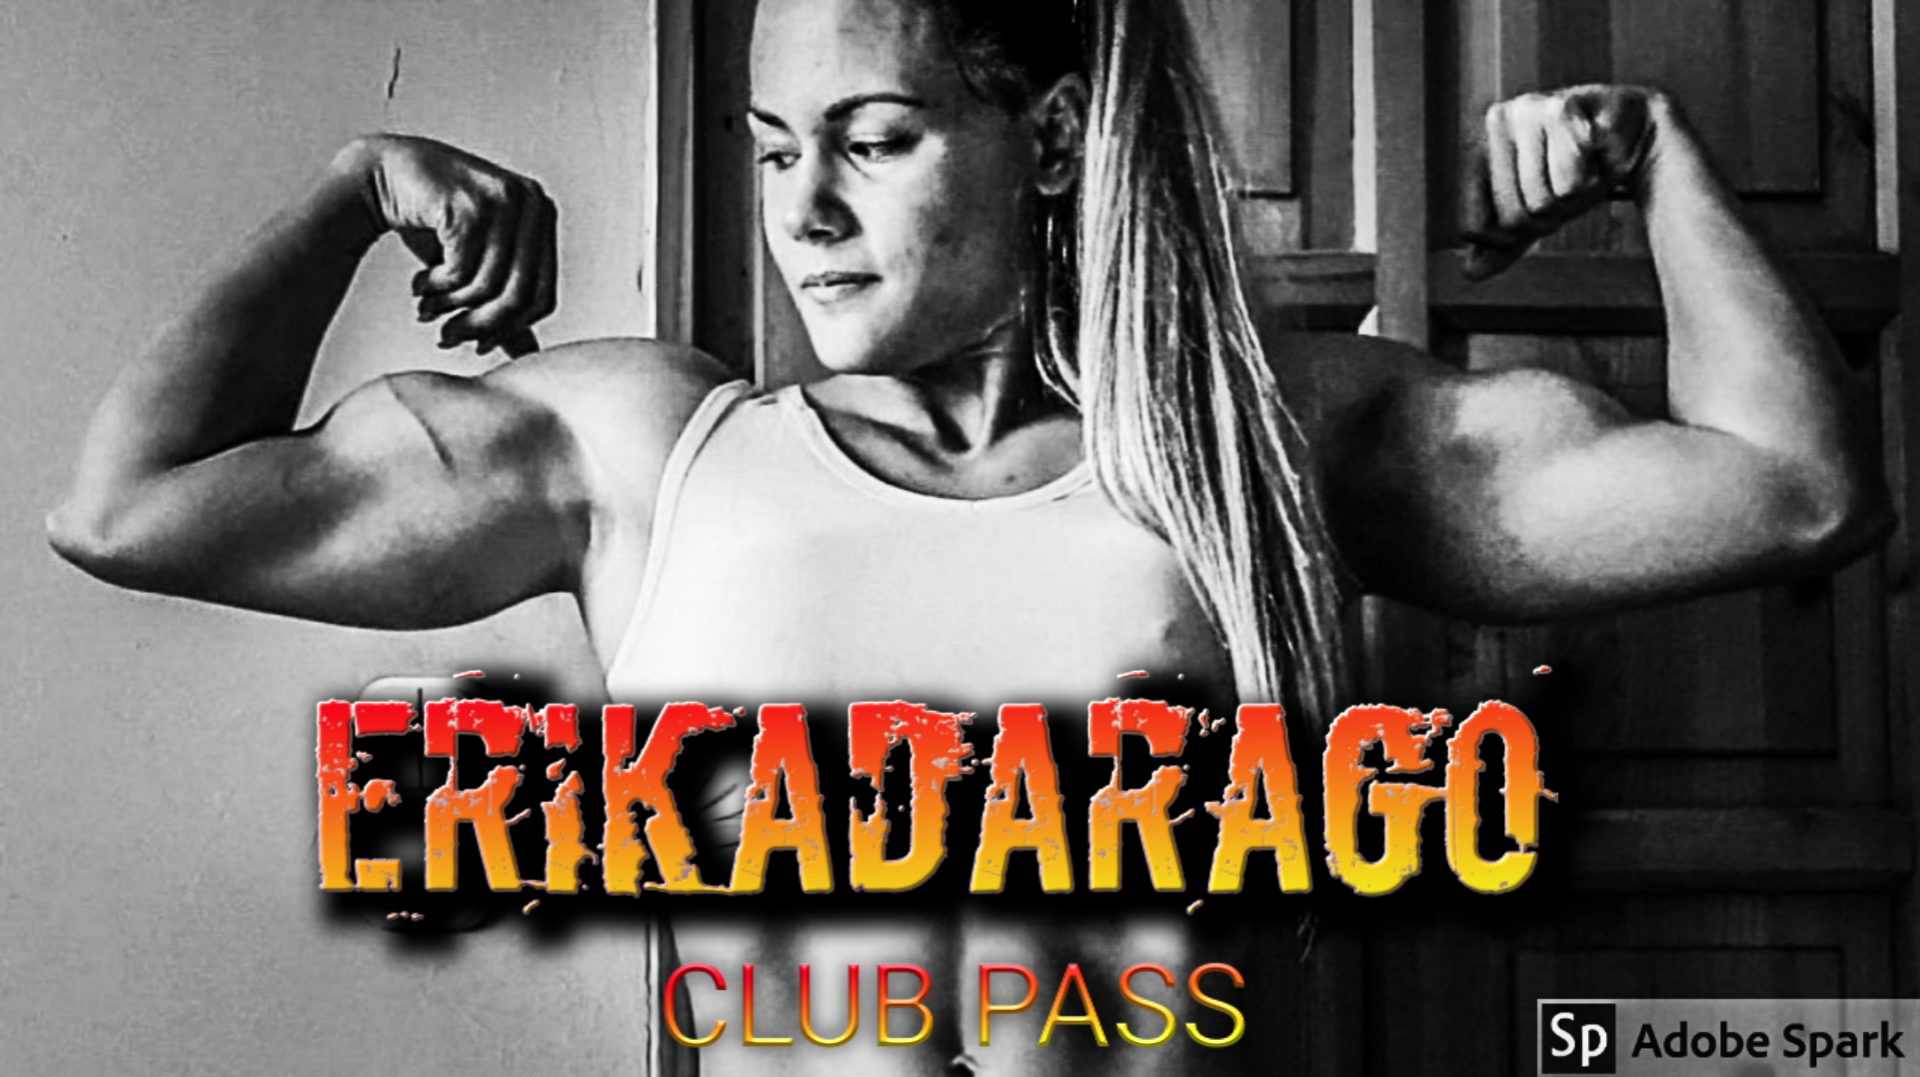 Erikadarago Club Pass